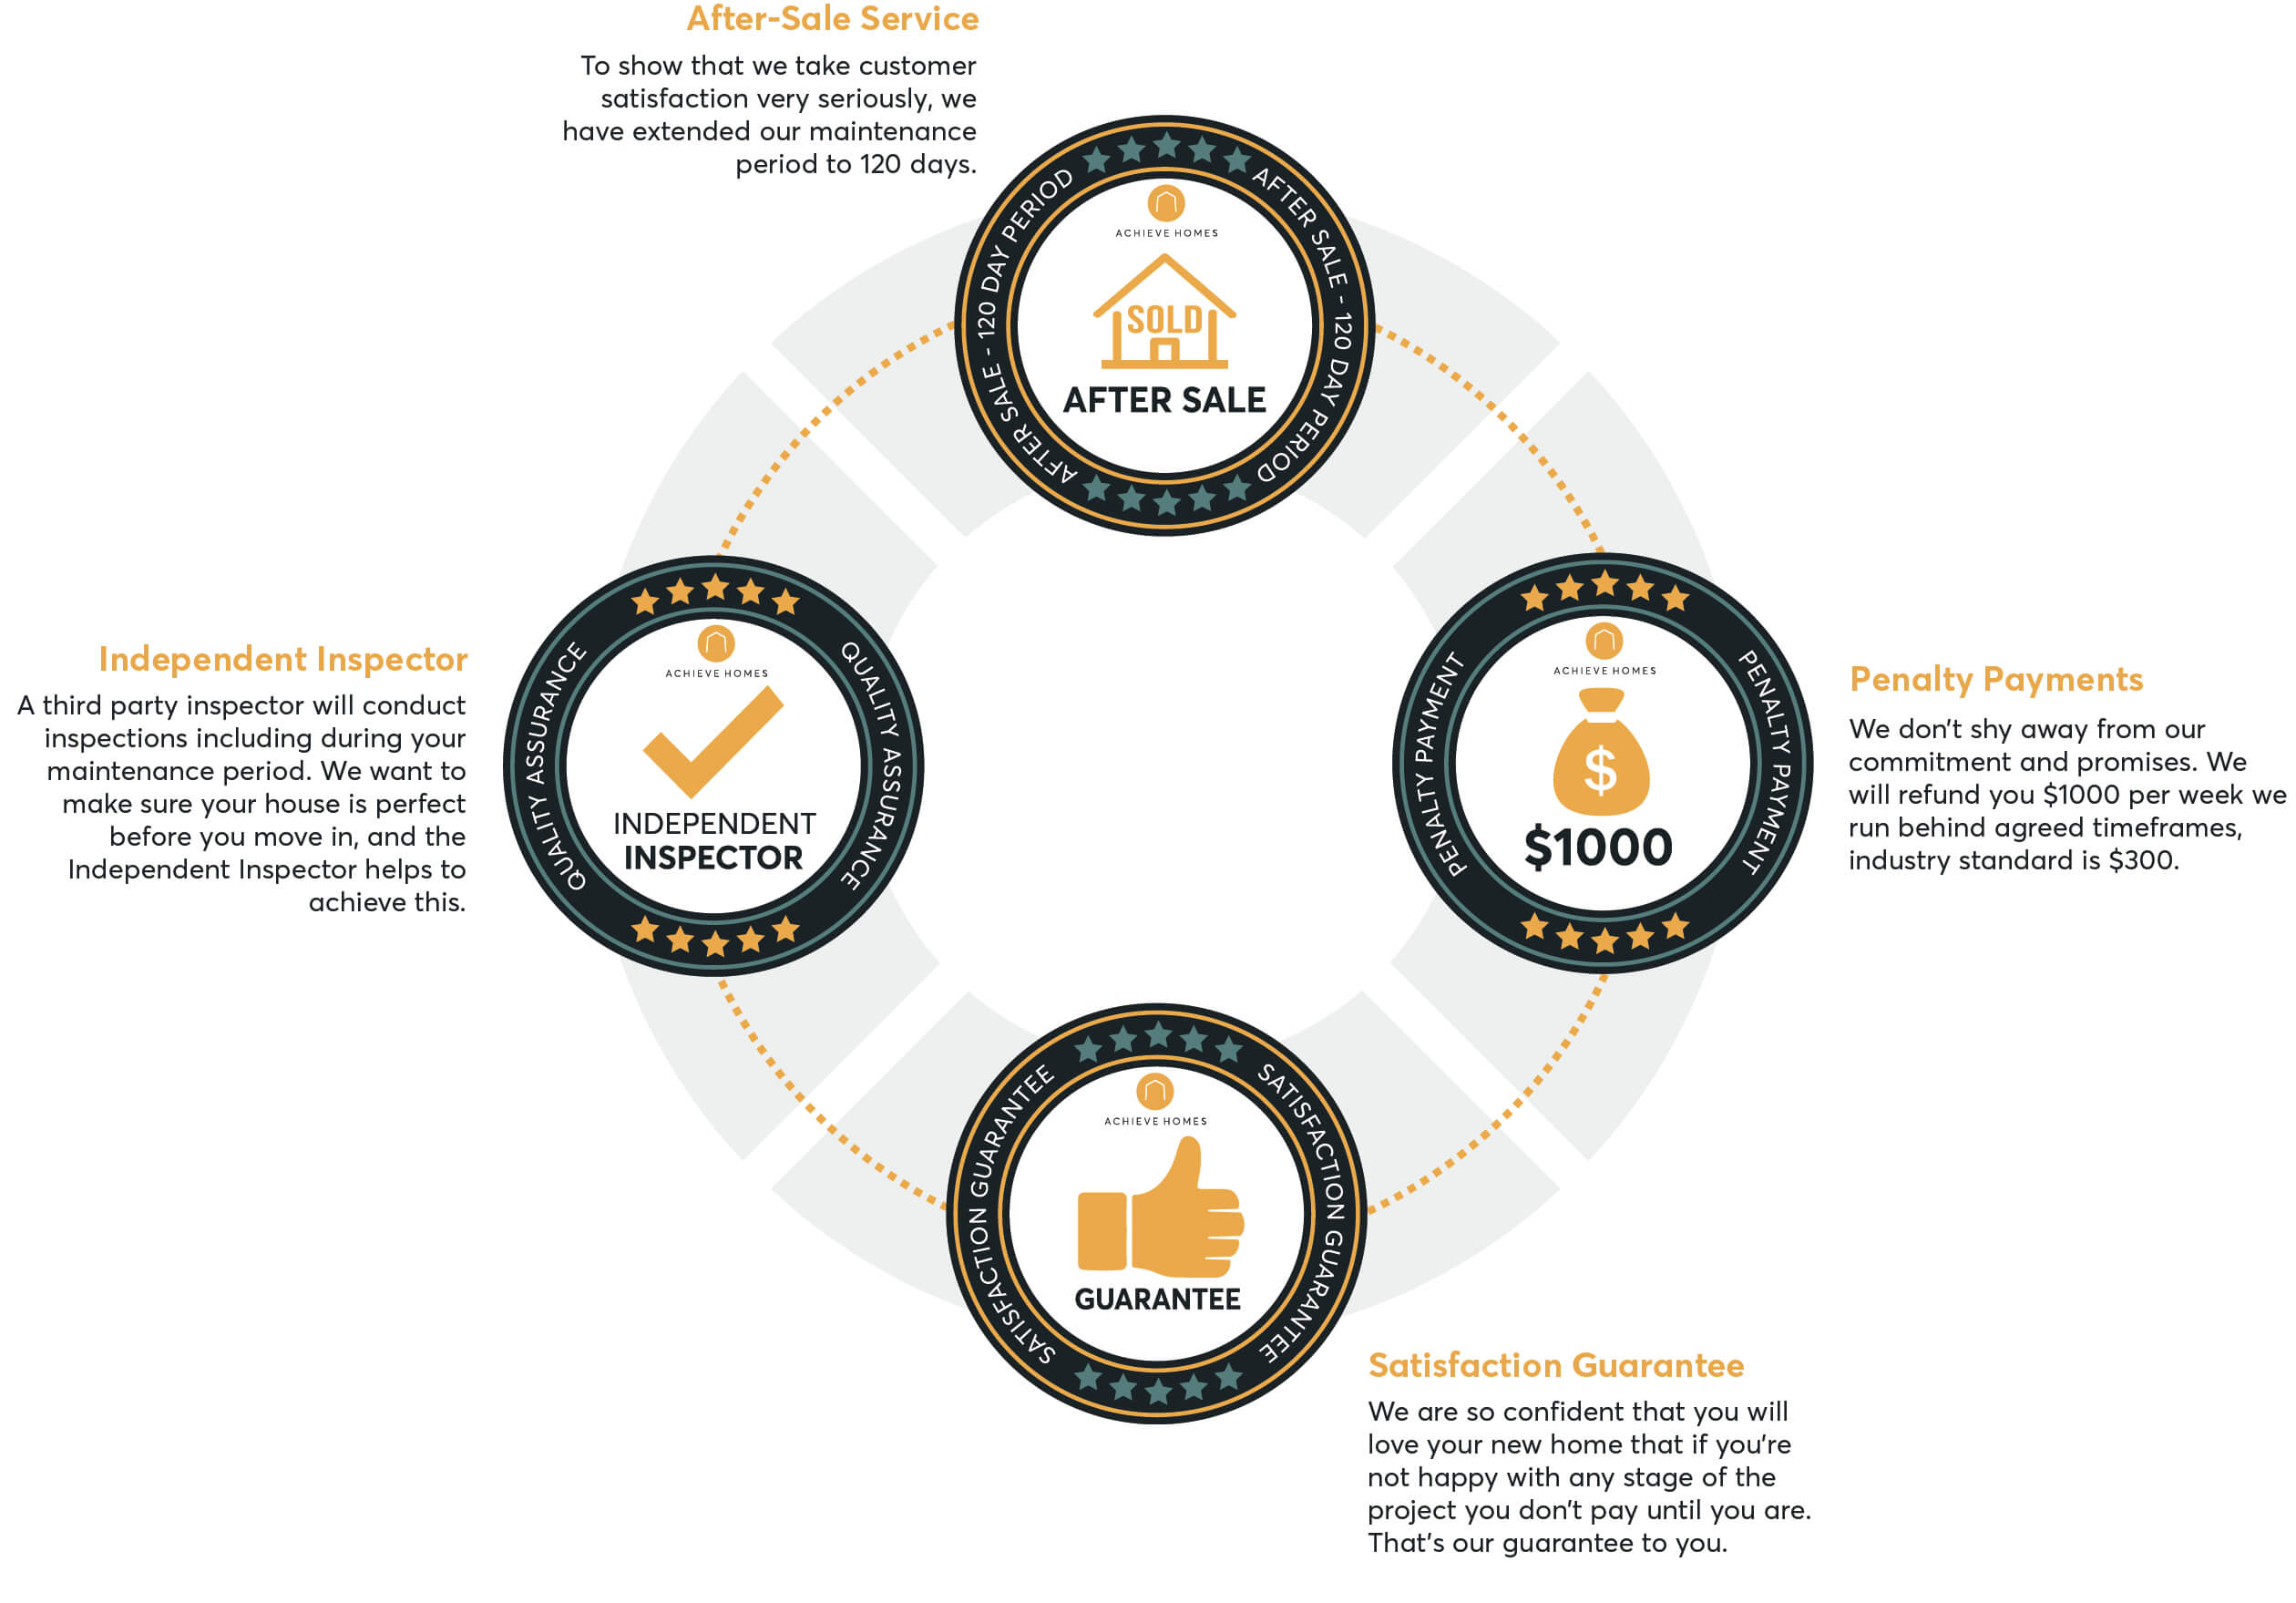 Infographic explaining the 6 peace of mind inclusions in Achieve Homes' building process including independent inspectors, a 30-year structural guarantee, home owners warranty, after-sale service, penalty payments for delays and satisfaction guarantee